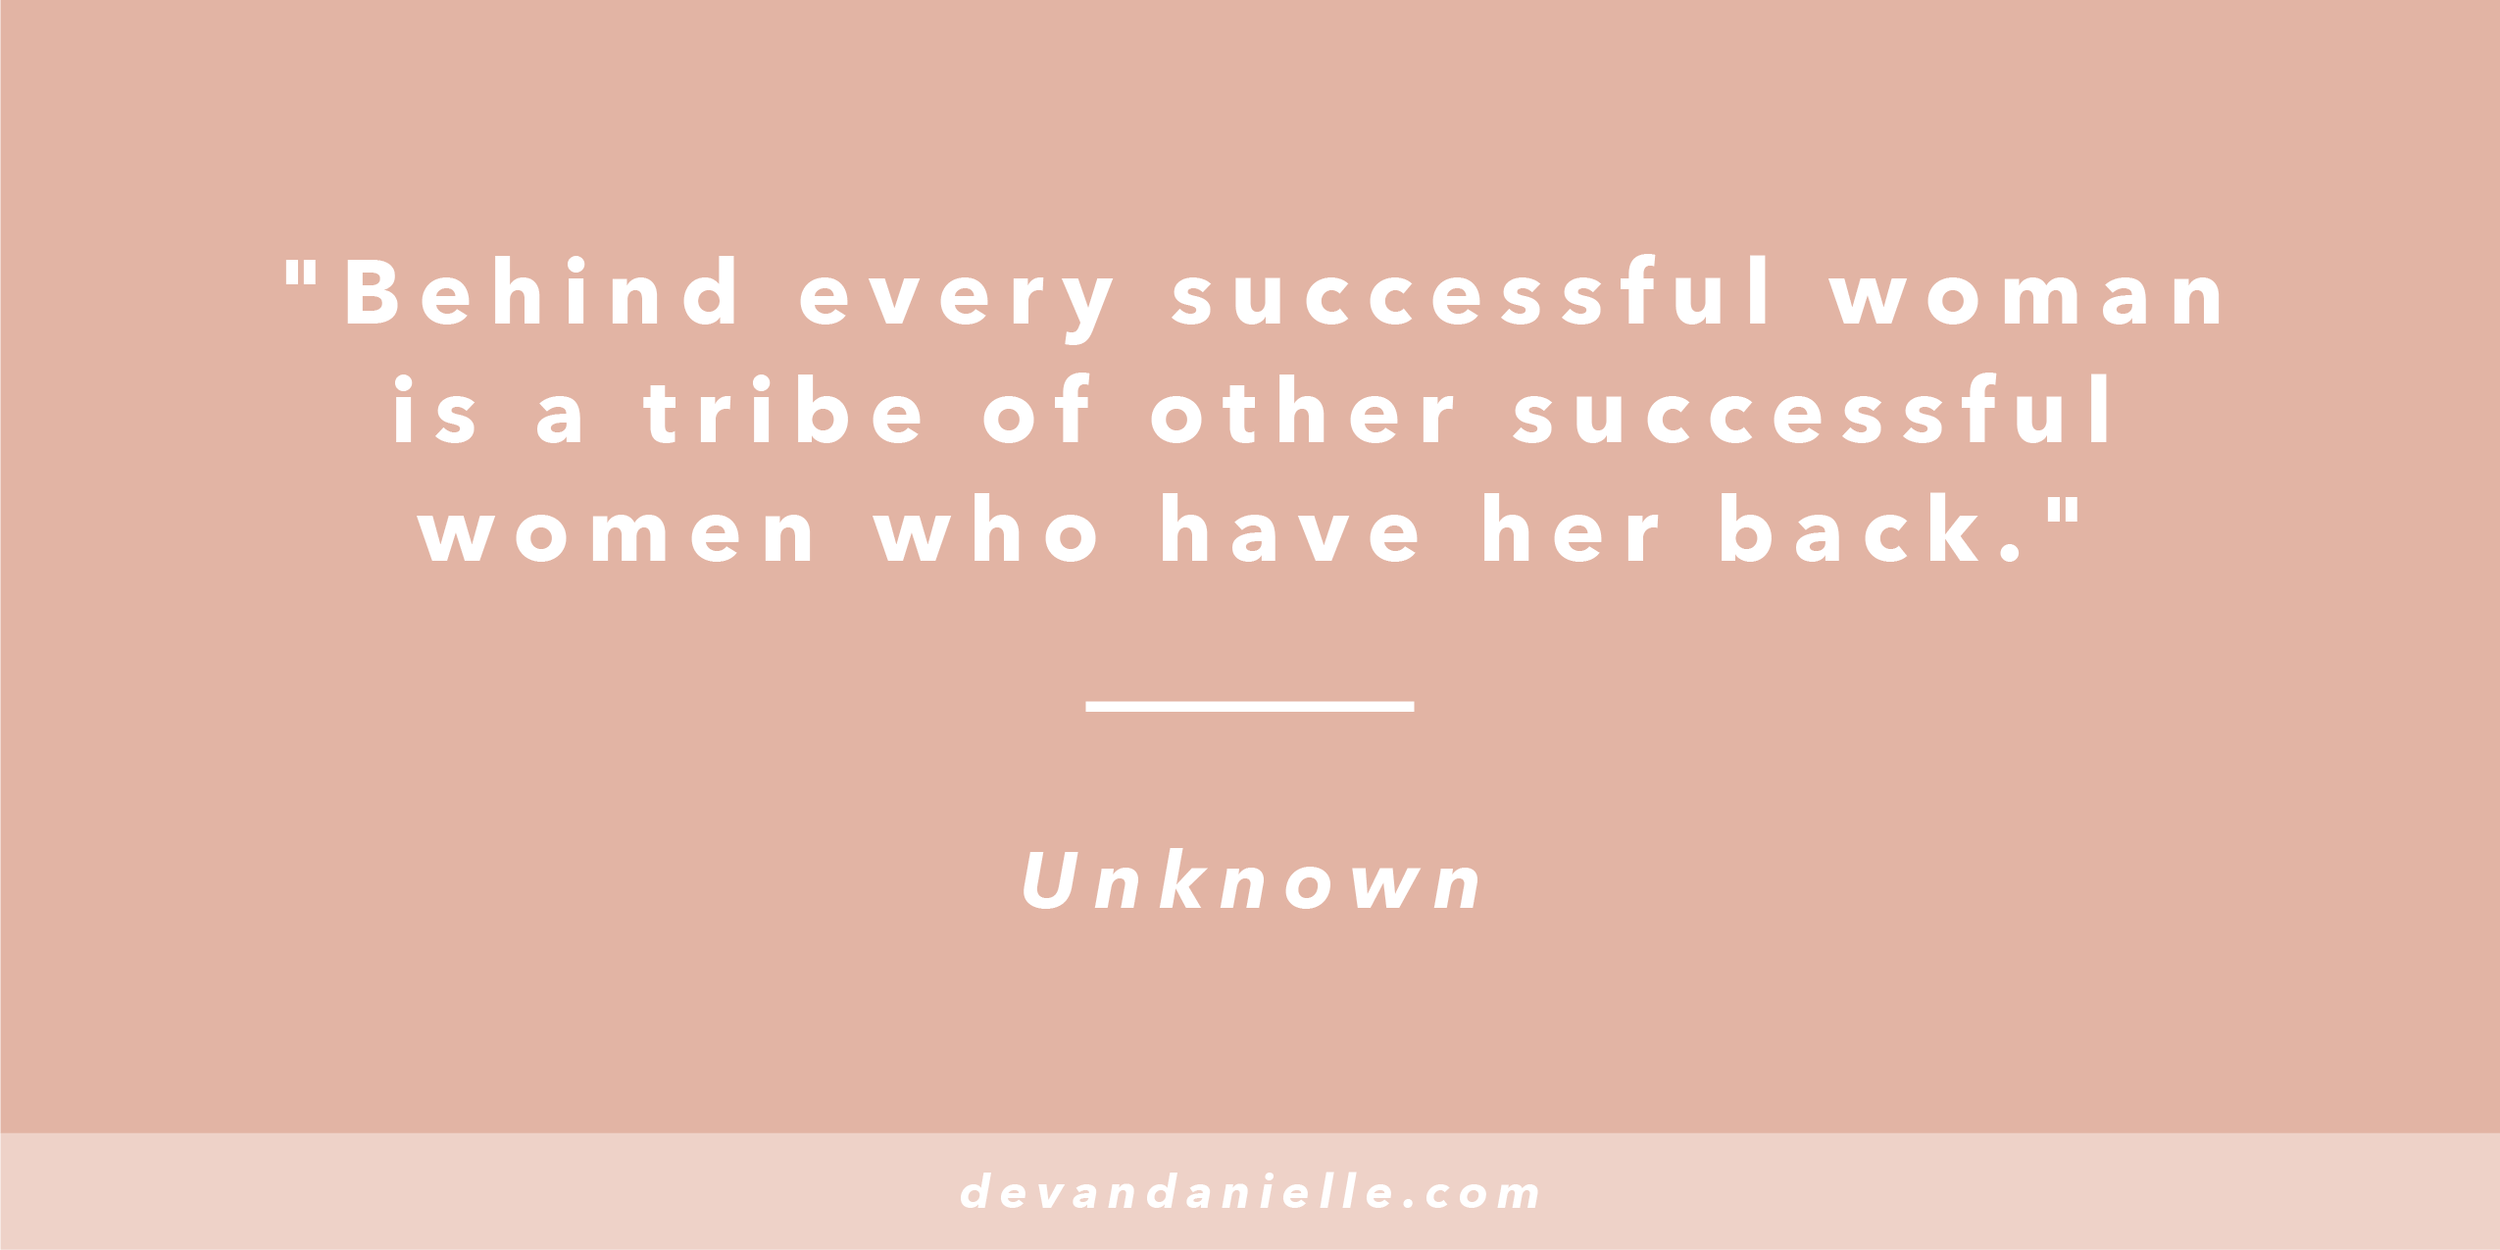 Devan Danielle - Behind Every Successful woman is a tribe of other successful women who have her back